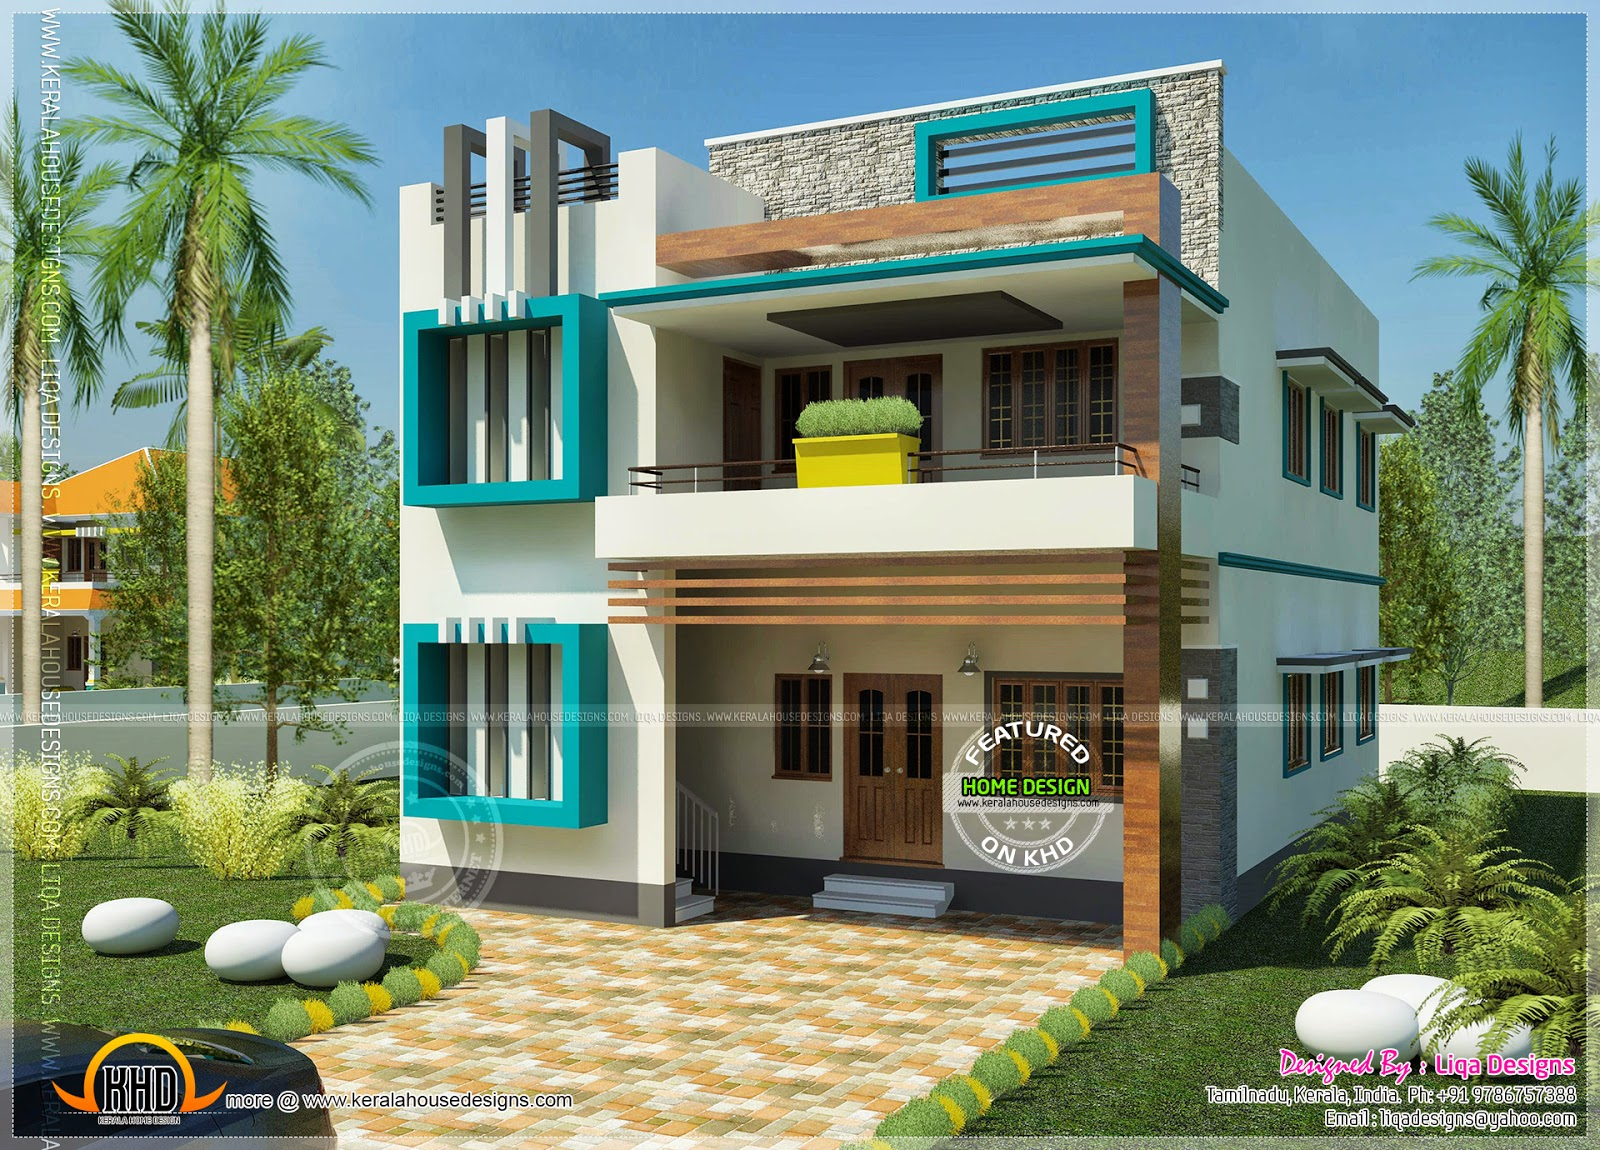 South indian contemporary home kerala home design and for House architecture styles in india